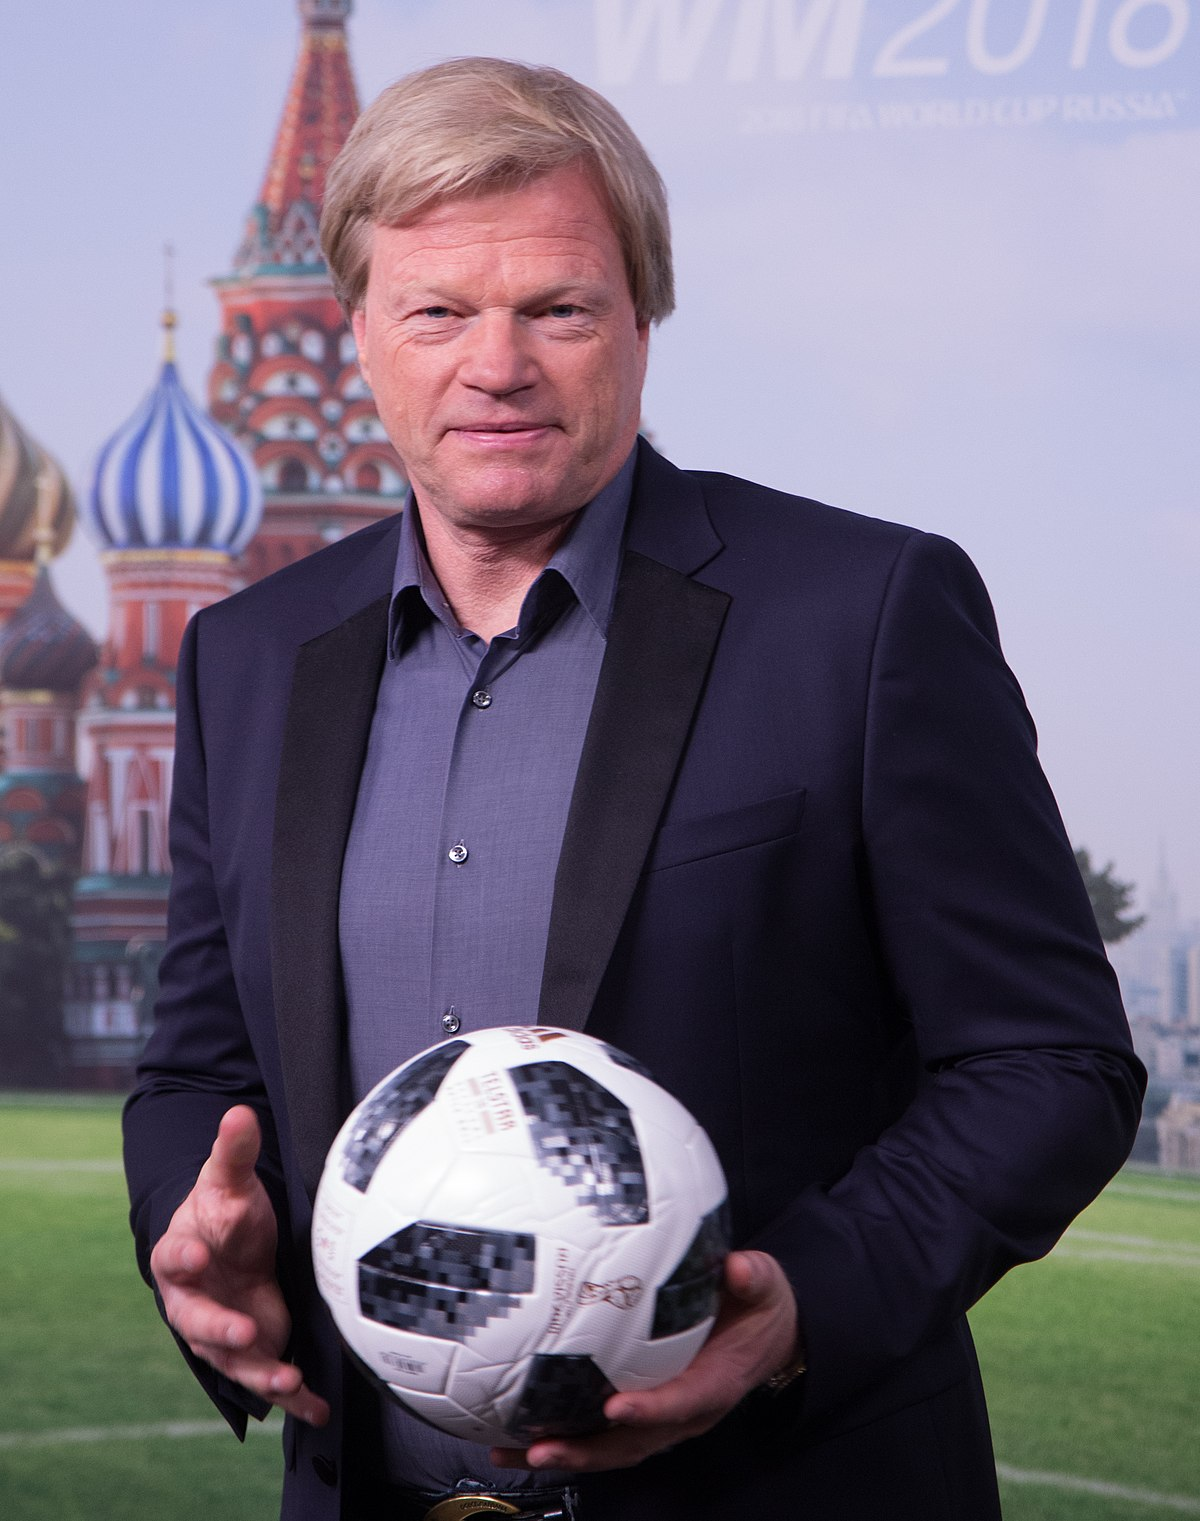 Photo of Oliver Kahn named as next Bayern Munich CEO